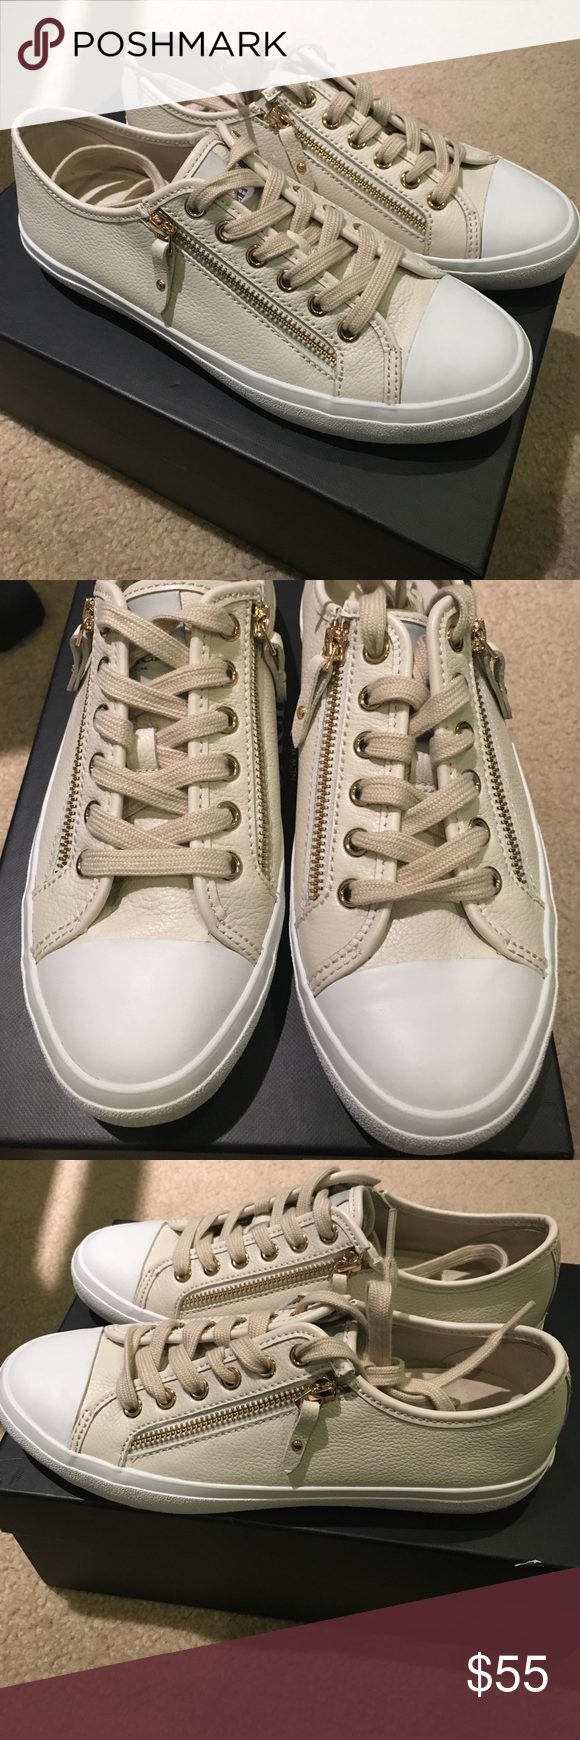 Coach leather chalk sneakers 👟 In excellent condition. Close to new. Authentic. Comes in original box Coach Shoes Sneakers